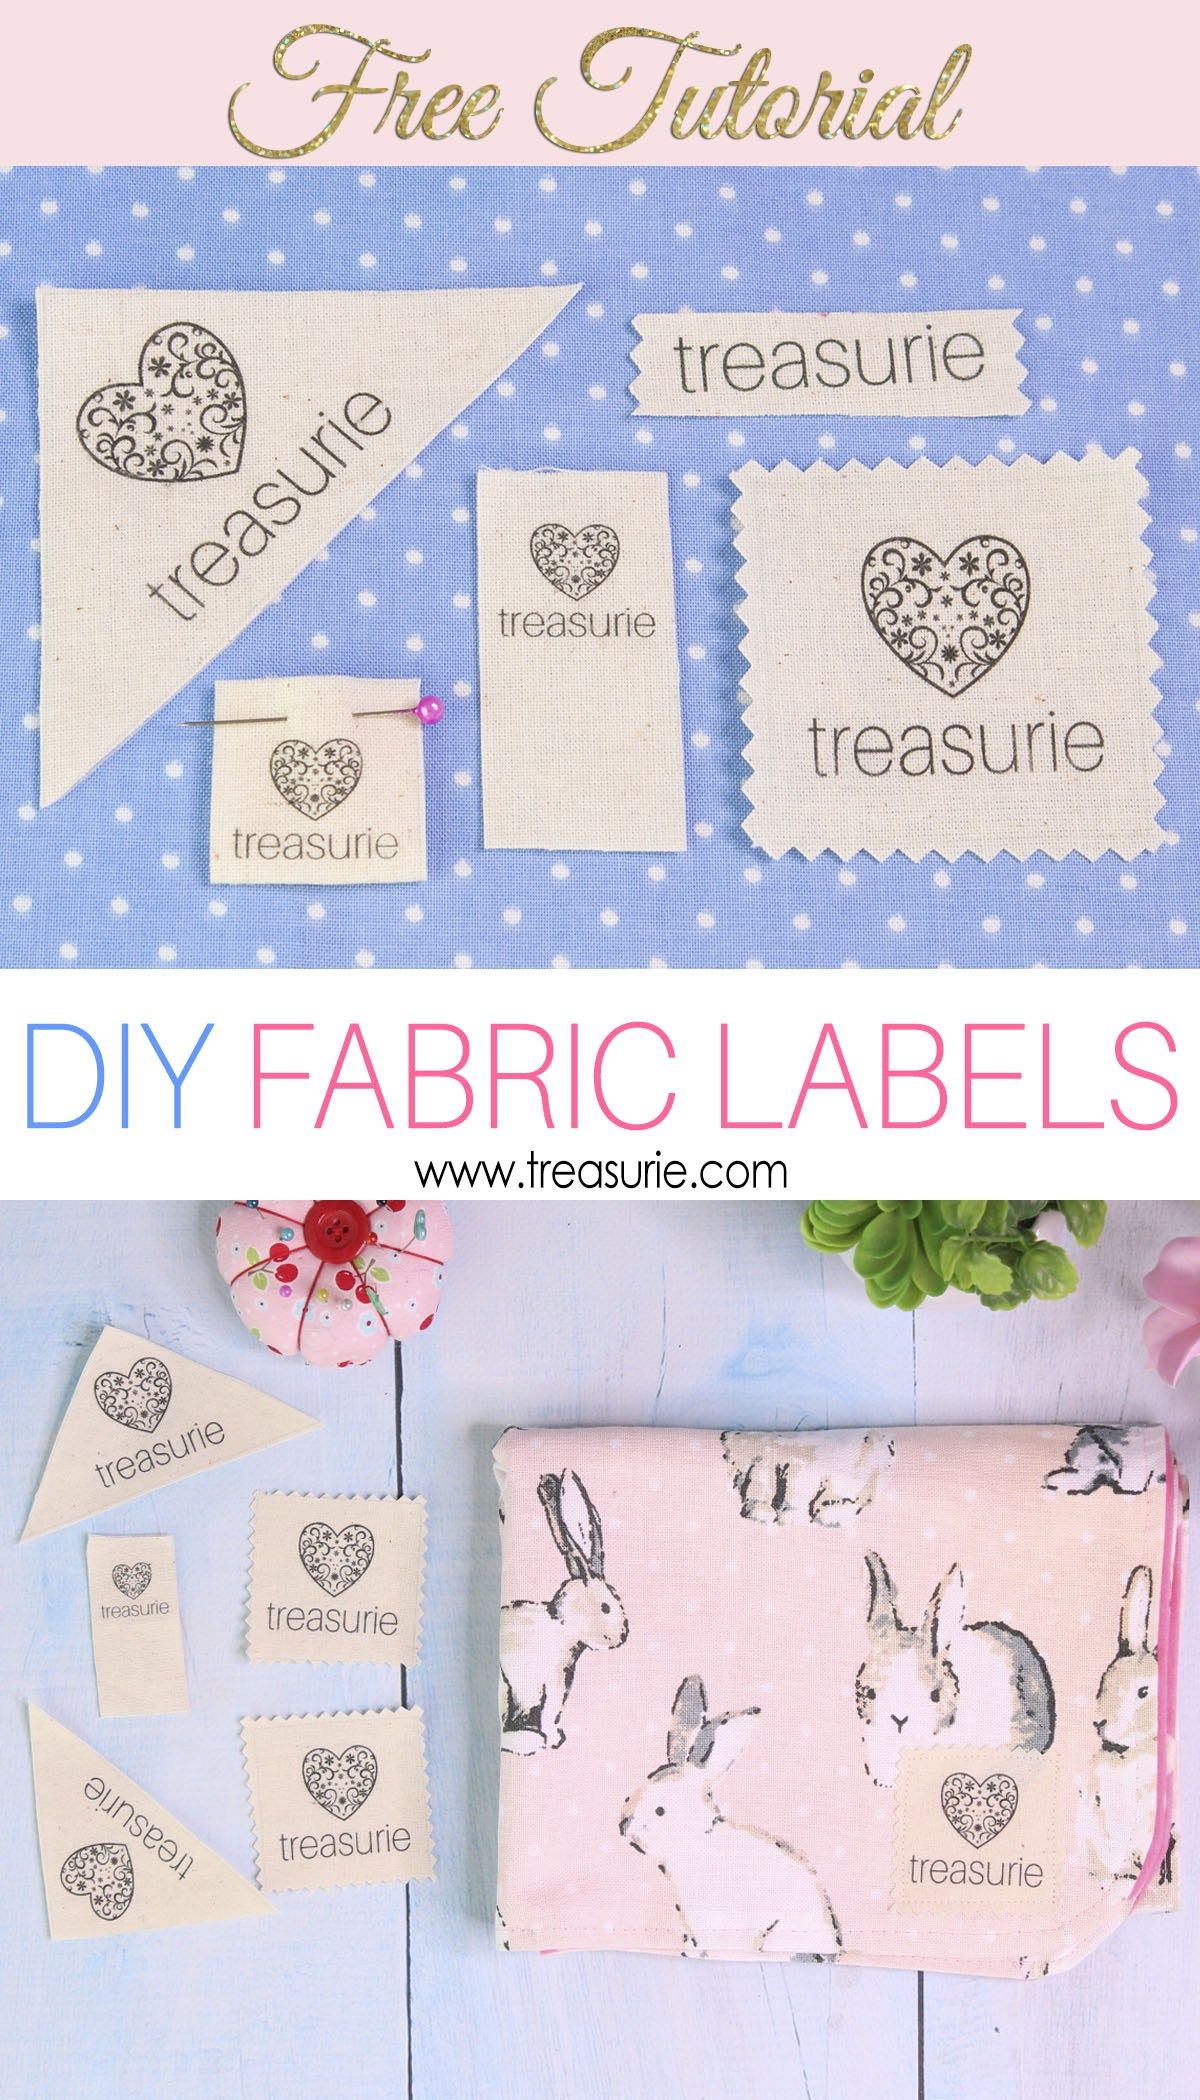 d9f6688a56dc Make your own Clothing Labels: DIY Fabric Labels Cheaply | Sewing ...